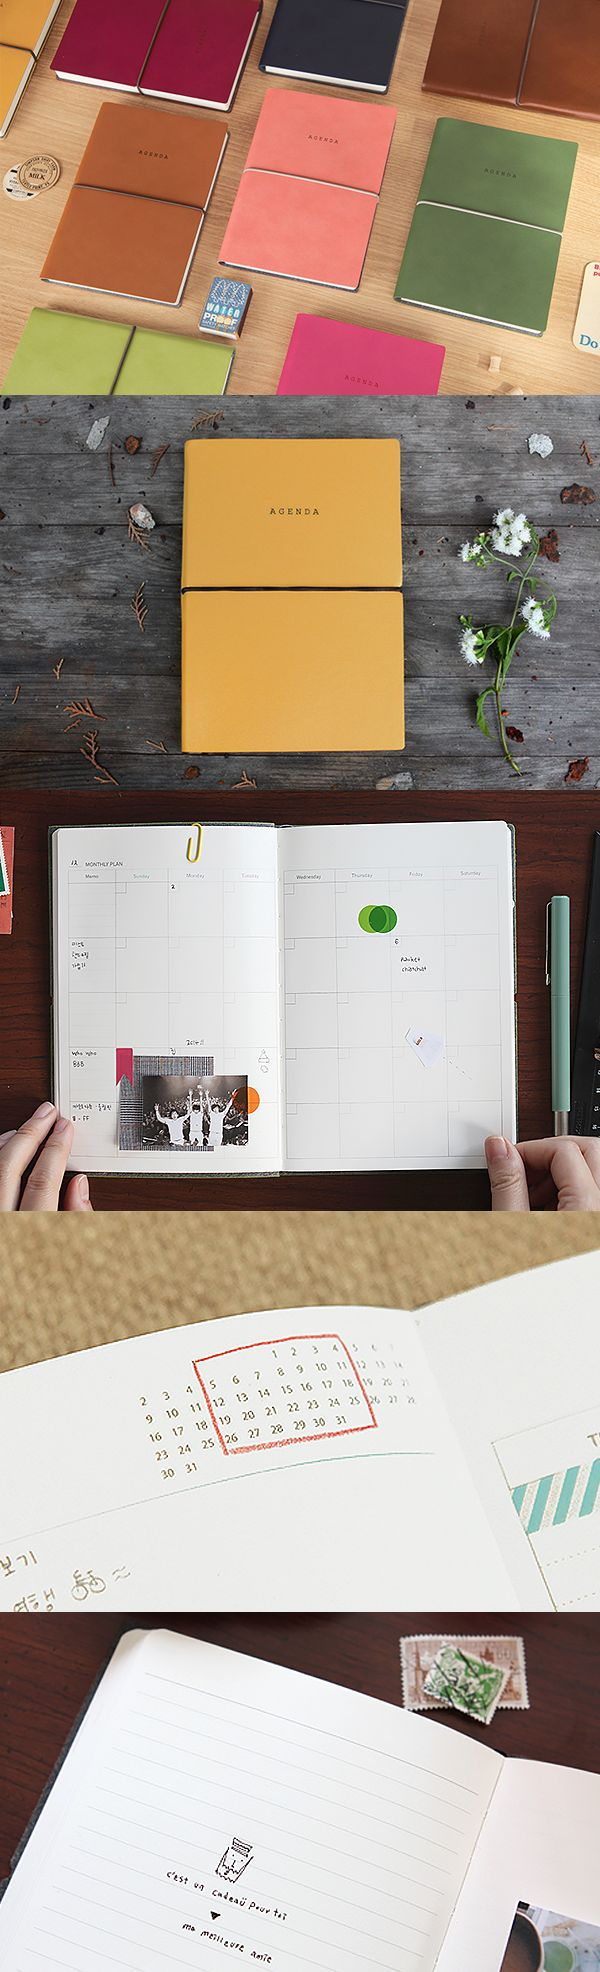 Get more done with this beautiful large agenda scheduler. Available in tons of unique colors, you can organize your time yearly, monthly, and weekly. This dateless planner allows you to create your own calendar from scratch and fill in the dates yourself..start whenever!